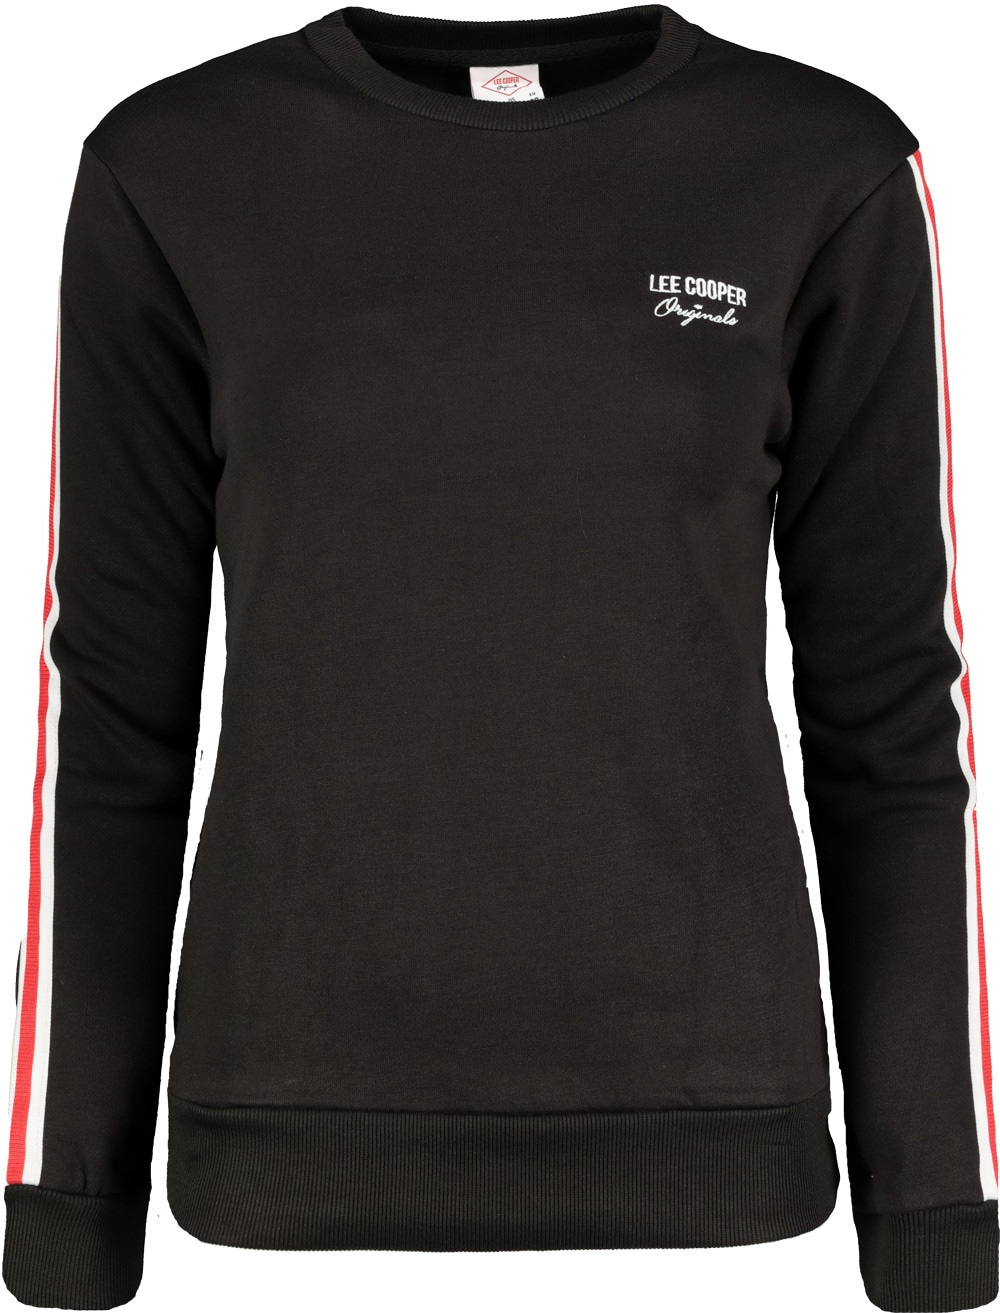 Women's sweatshirt Lee Cooper Taped